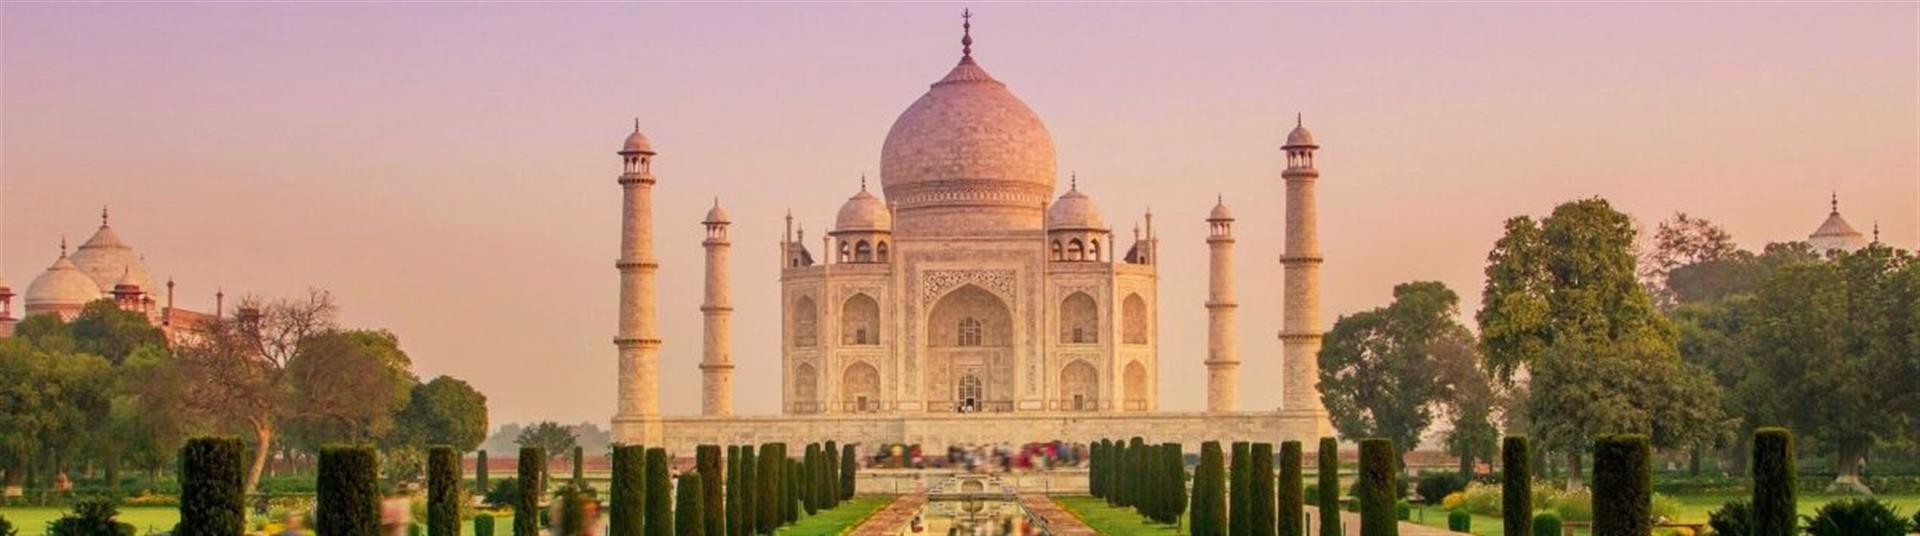 Agra Tour Packages Tour Packages in India